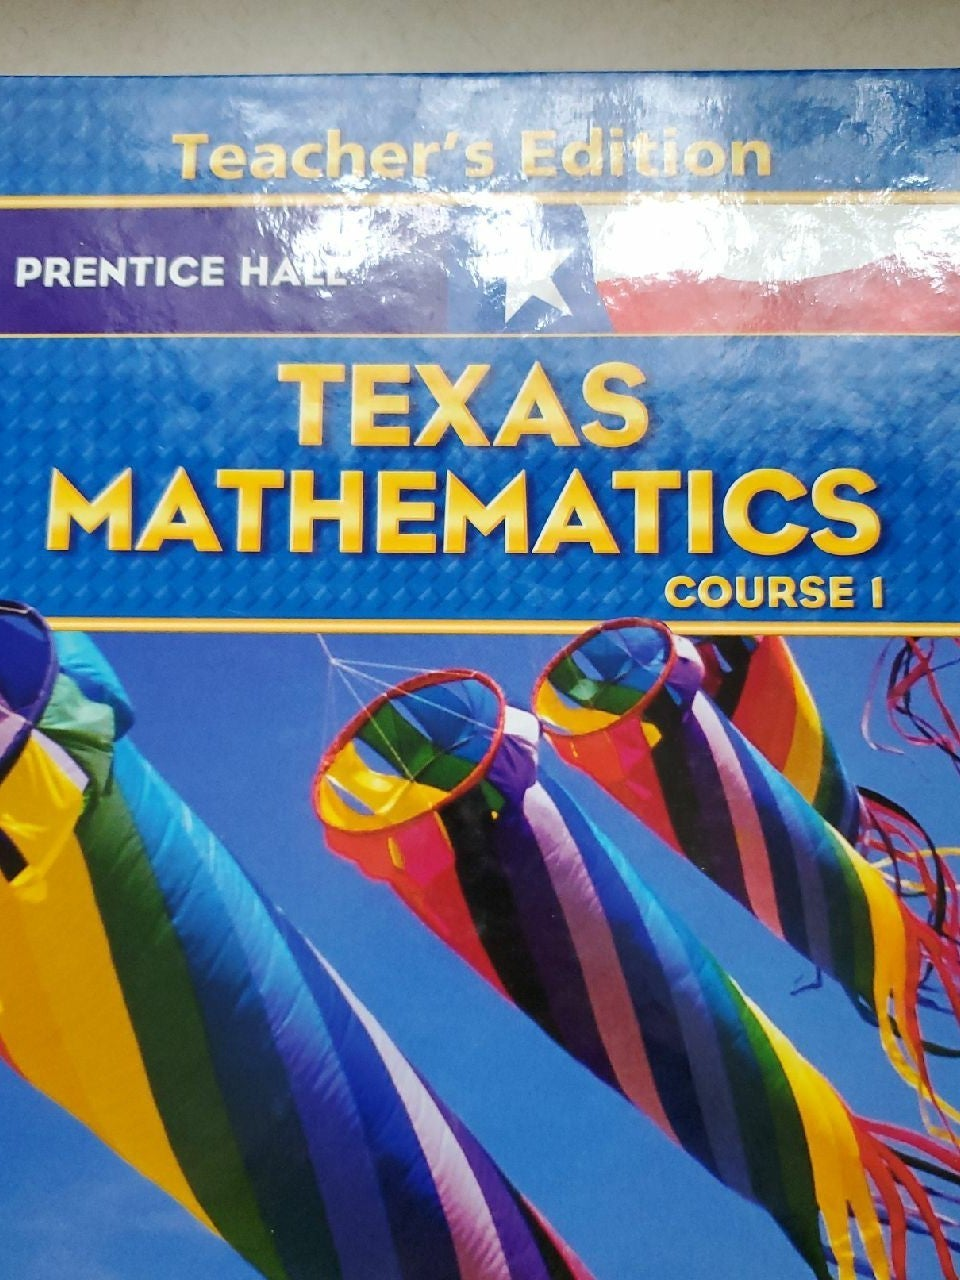 Teachers Edition Texas Mathematics Cours